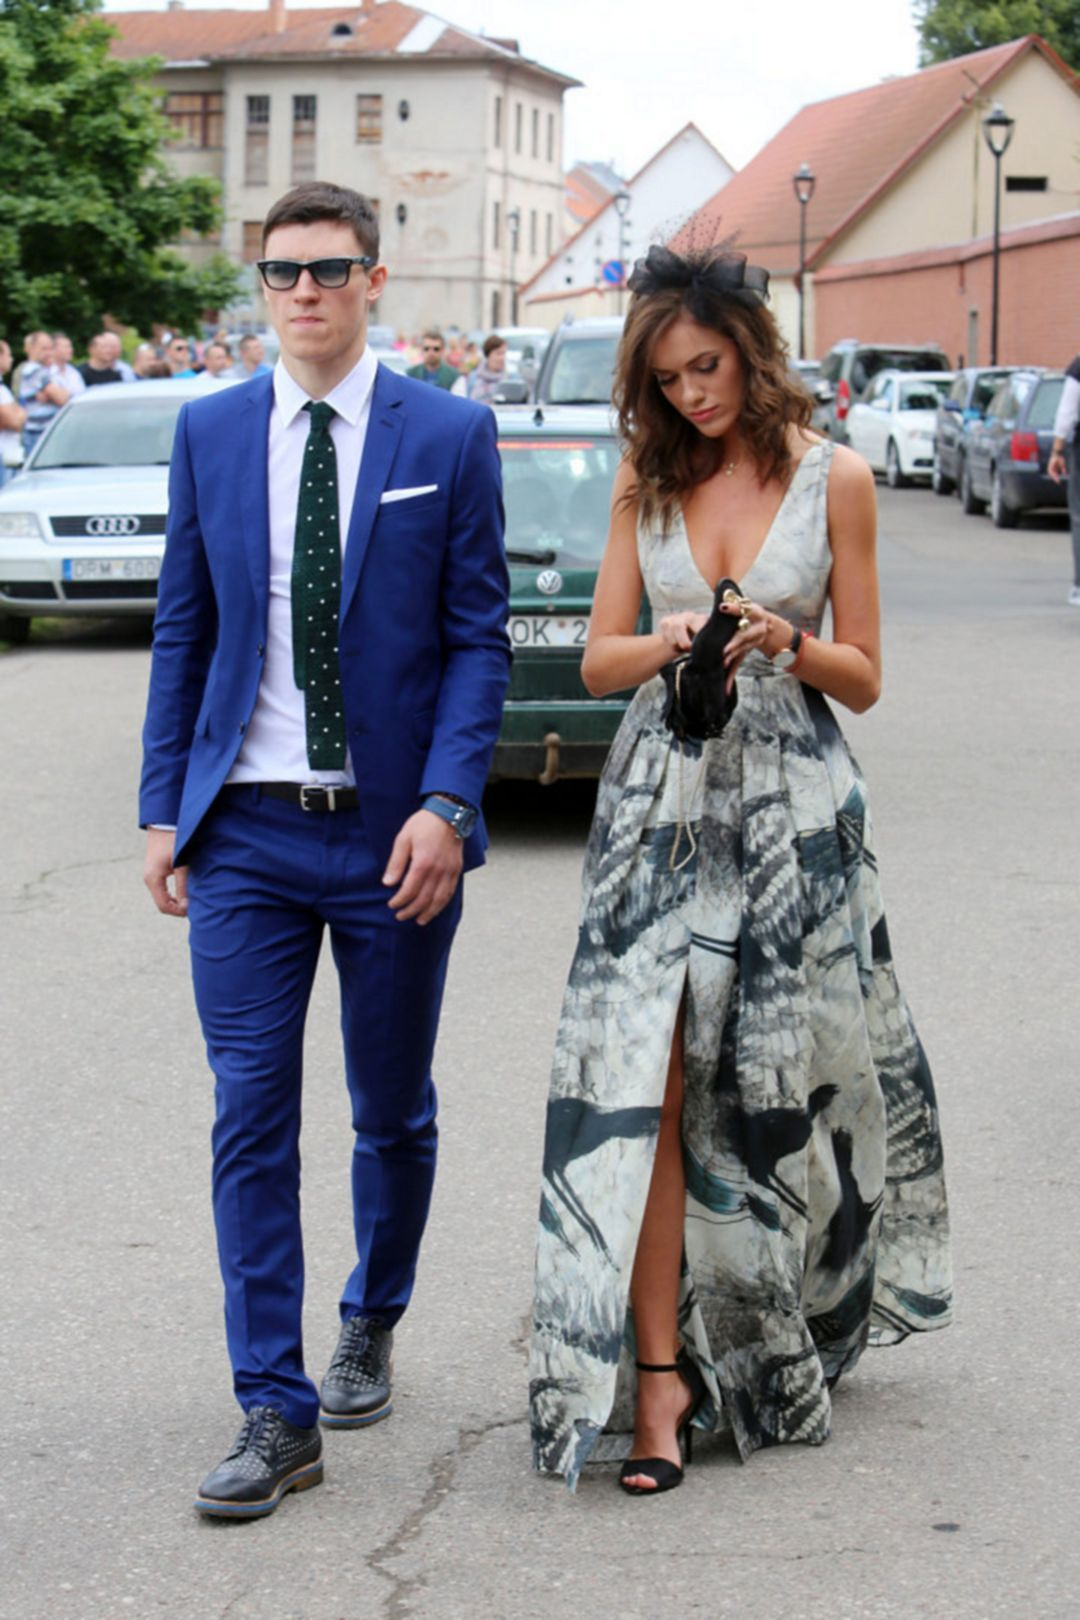 Awesome 50+ Awesome Guest Summer Wedding Outfit Ideas